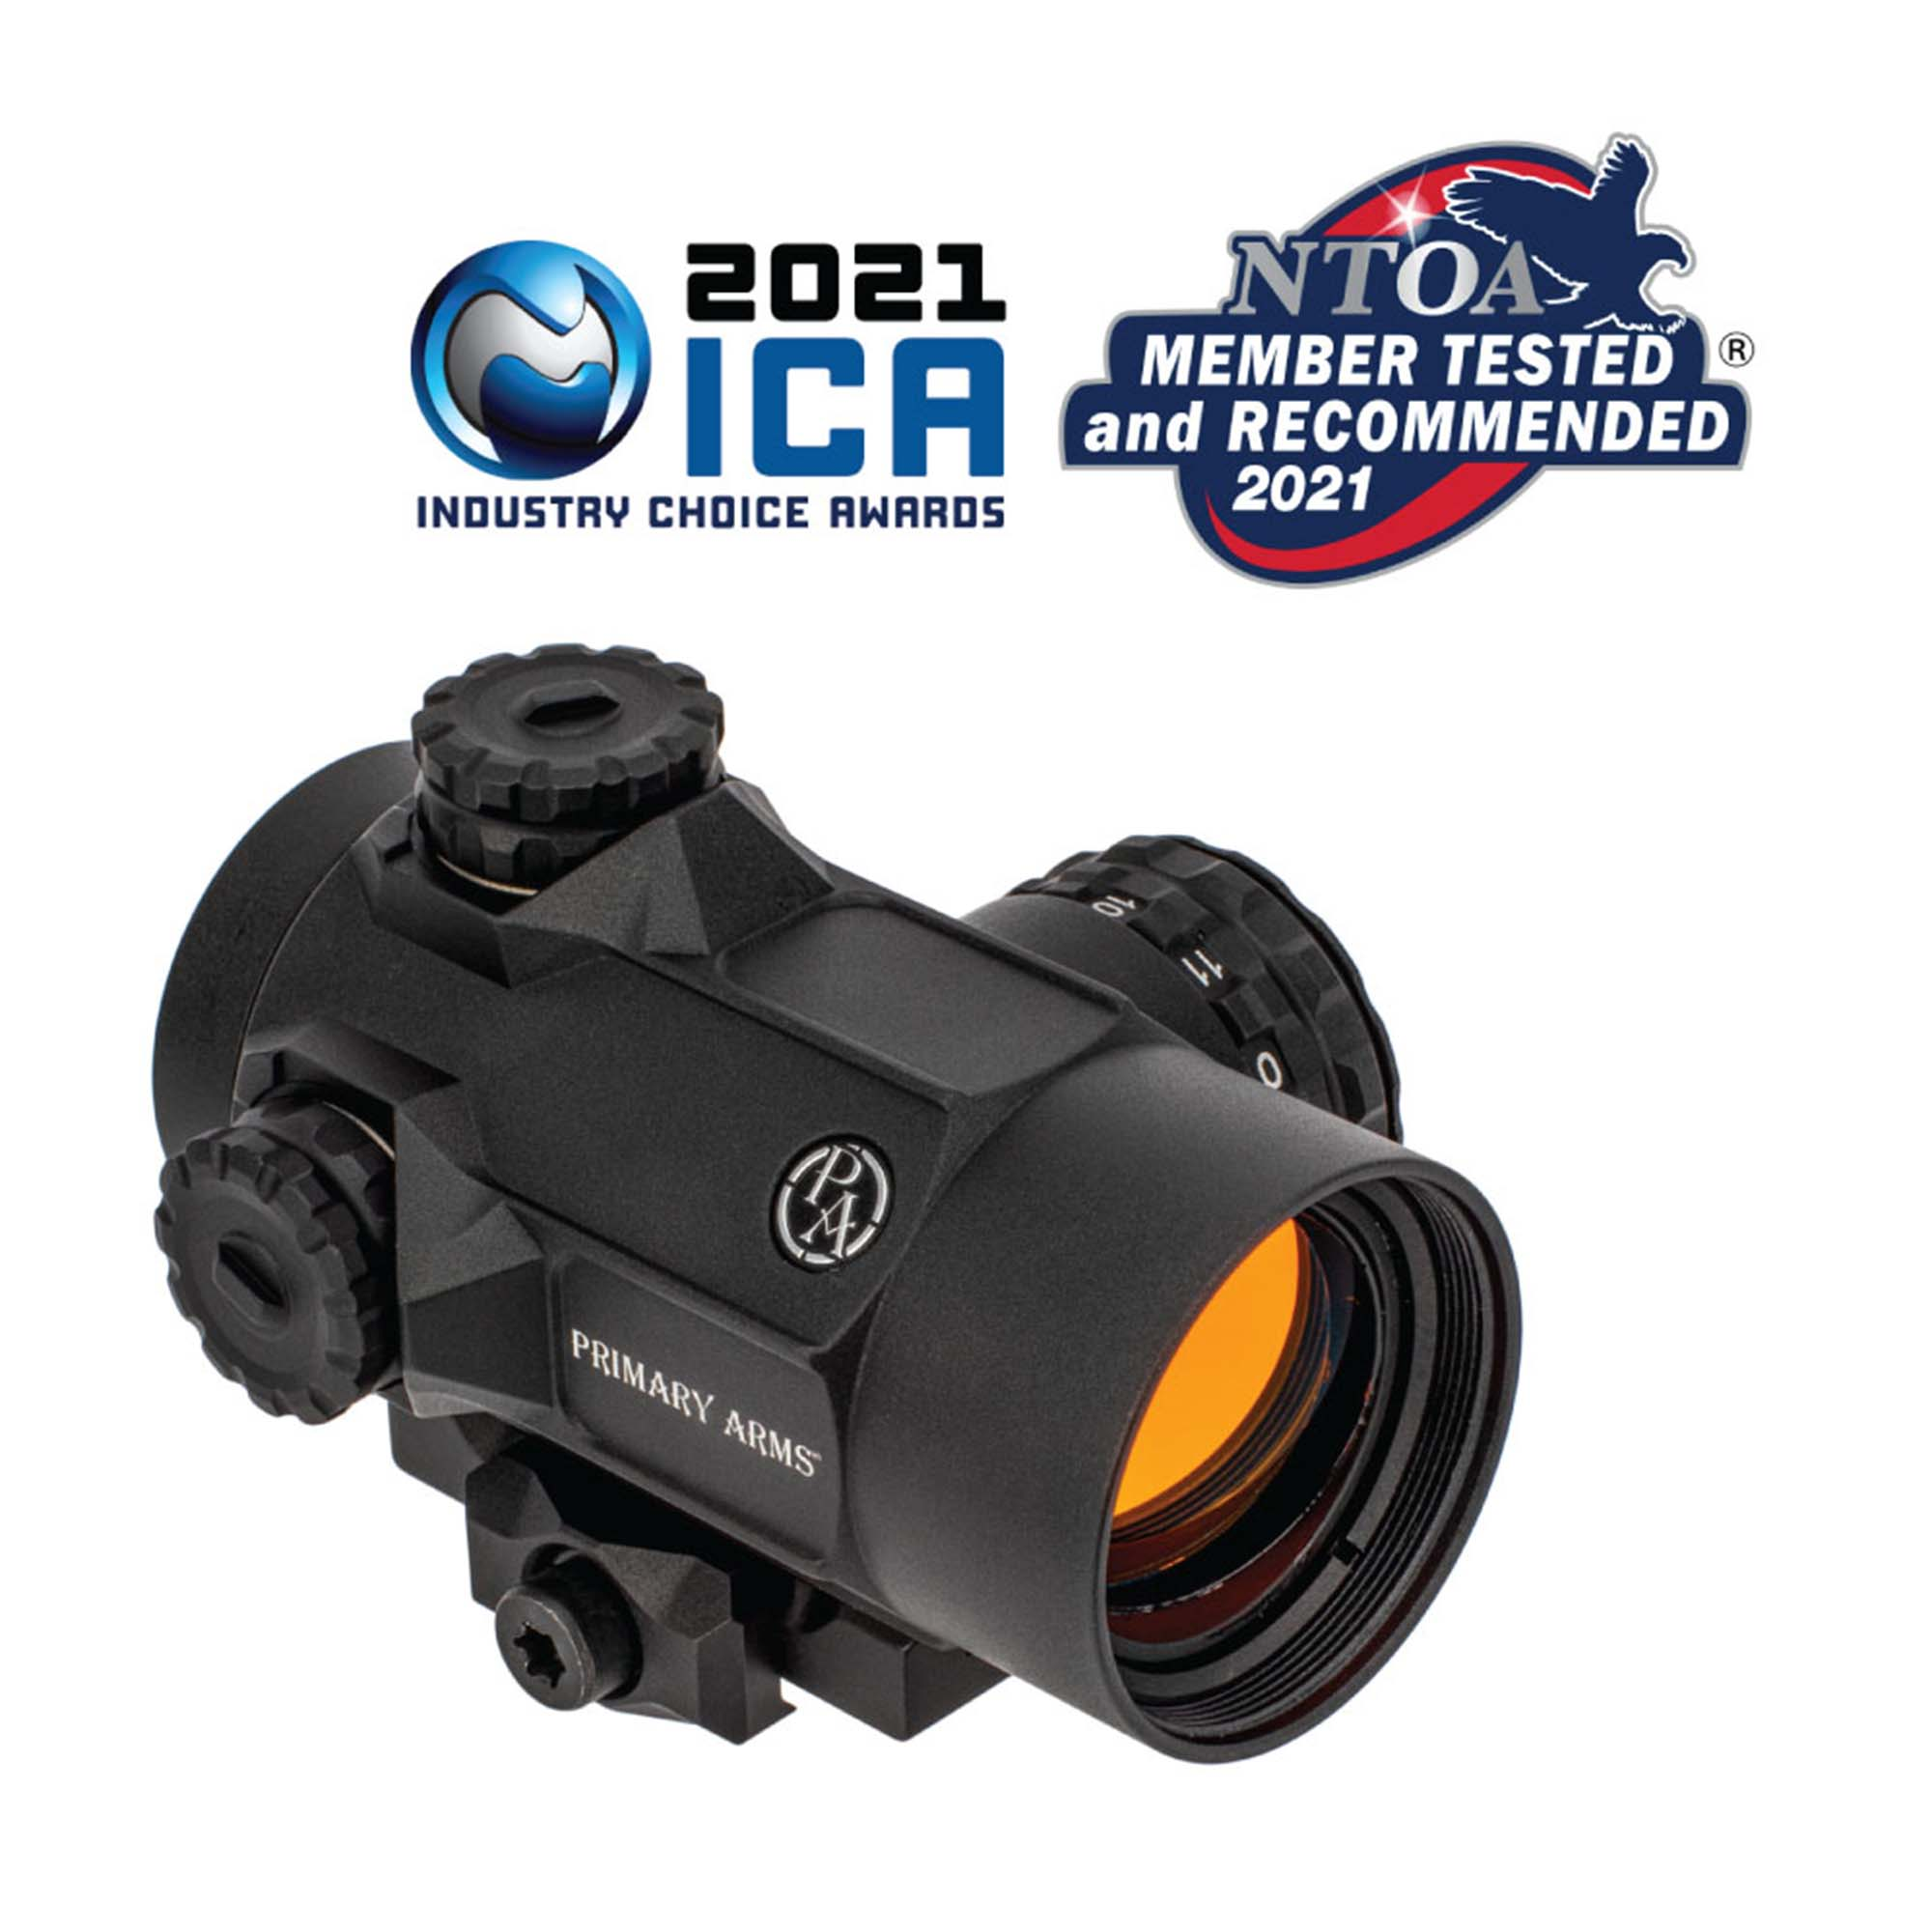 Primary Arms NTOA rated SLx red dot